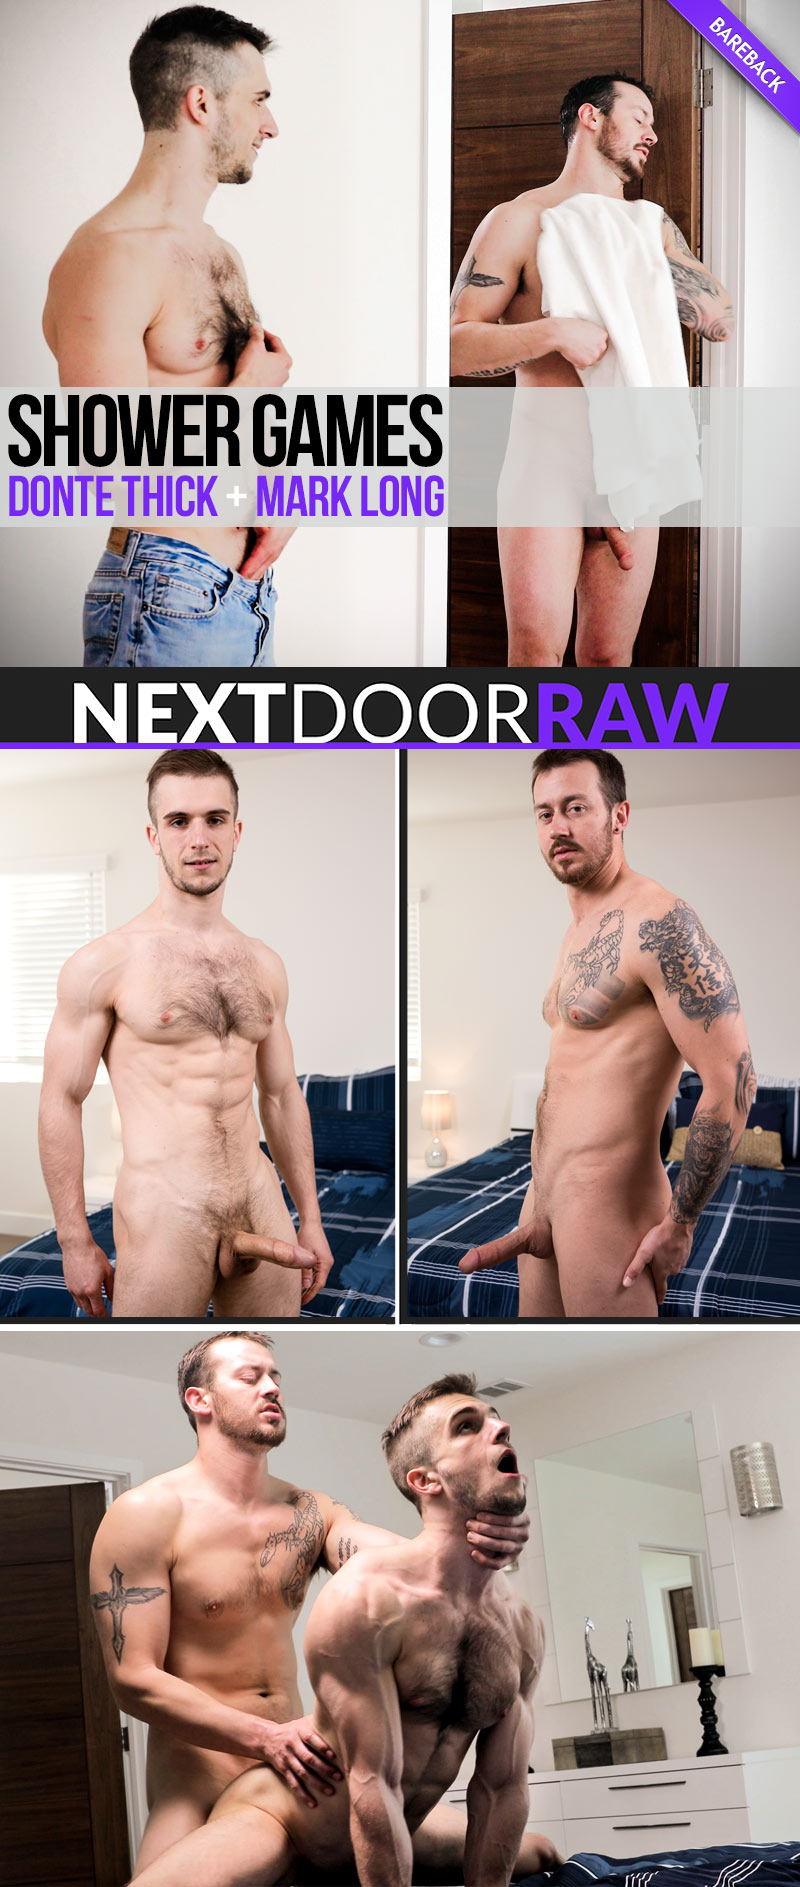 Shower Games (Mark Long and Donte Thick Flip-Fuck) at NextDoorRAW!